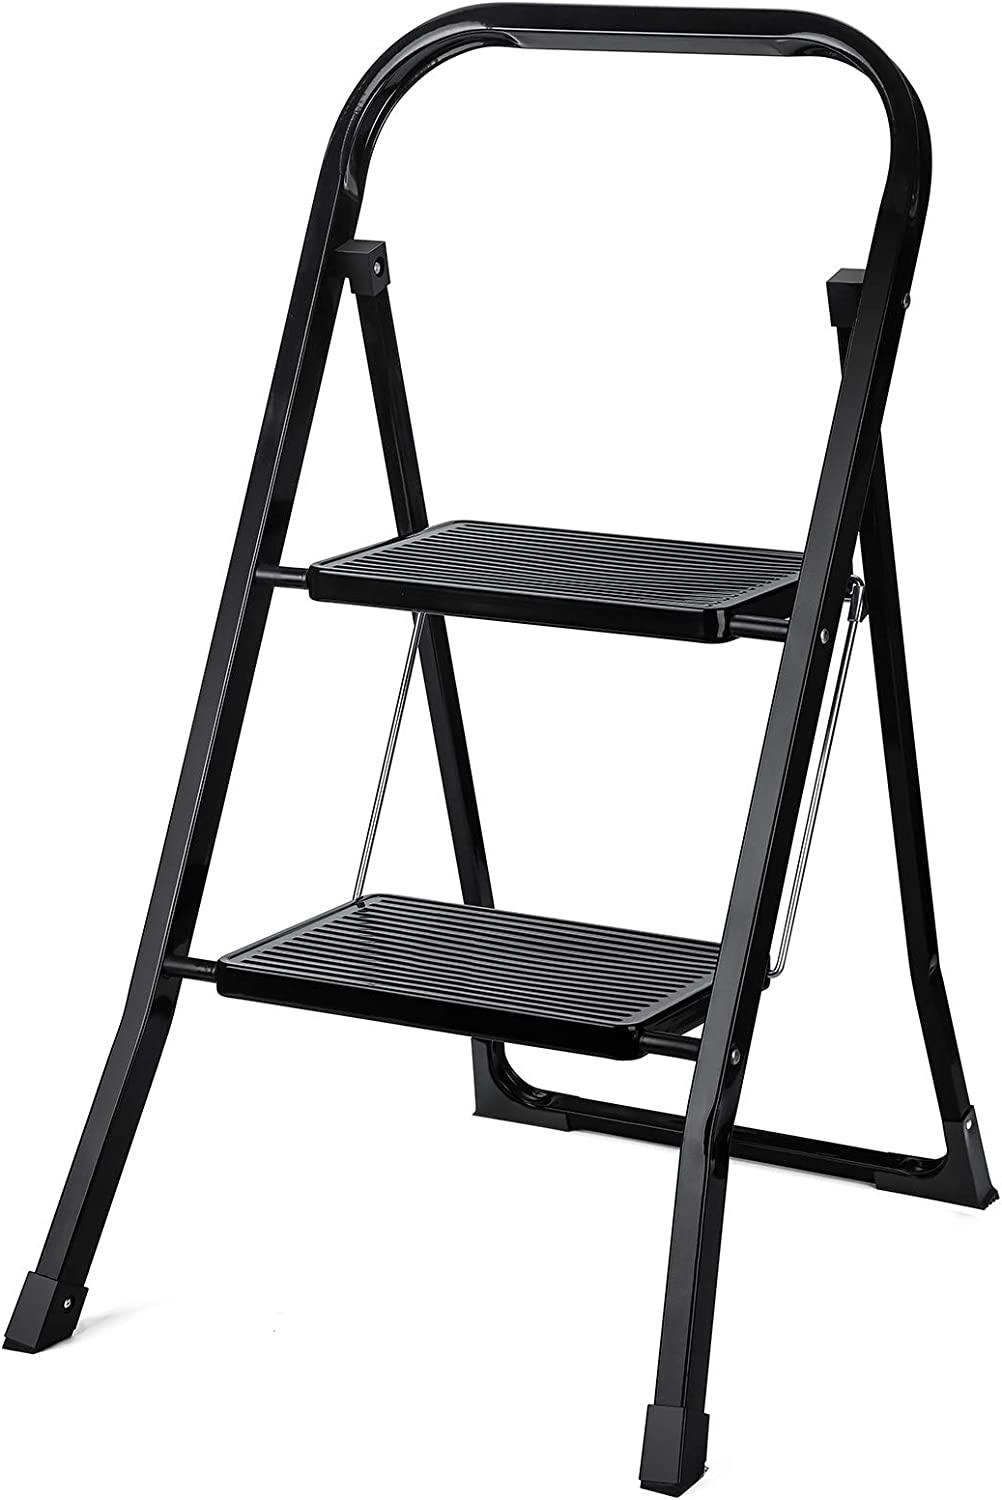 Delxo 2 Step Ladder Folding Step Stool Ladder with Handgrip Anti-Slip Sturdy and Wide Pedal,Convenient and Lightweight for Use Portable Step Stool Steel 330lbs Black (2 feet): Kitchen & Dining